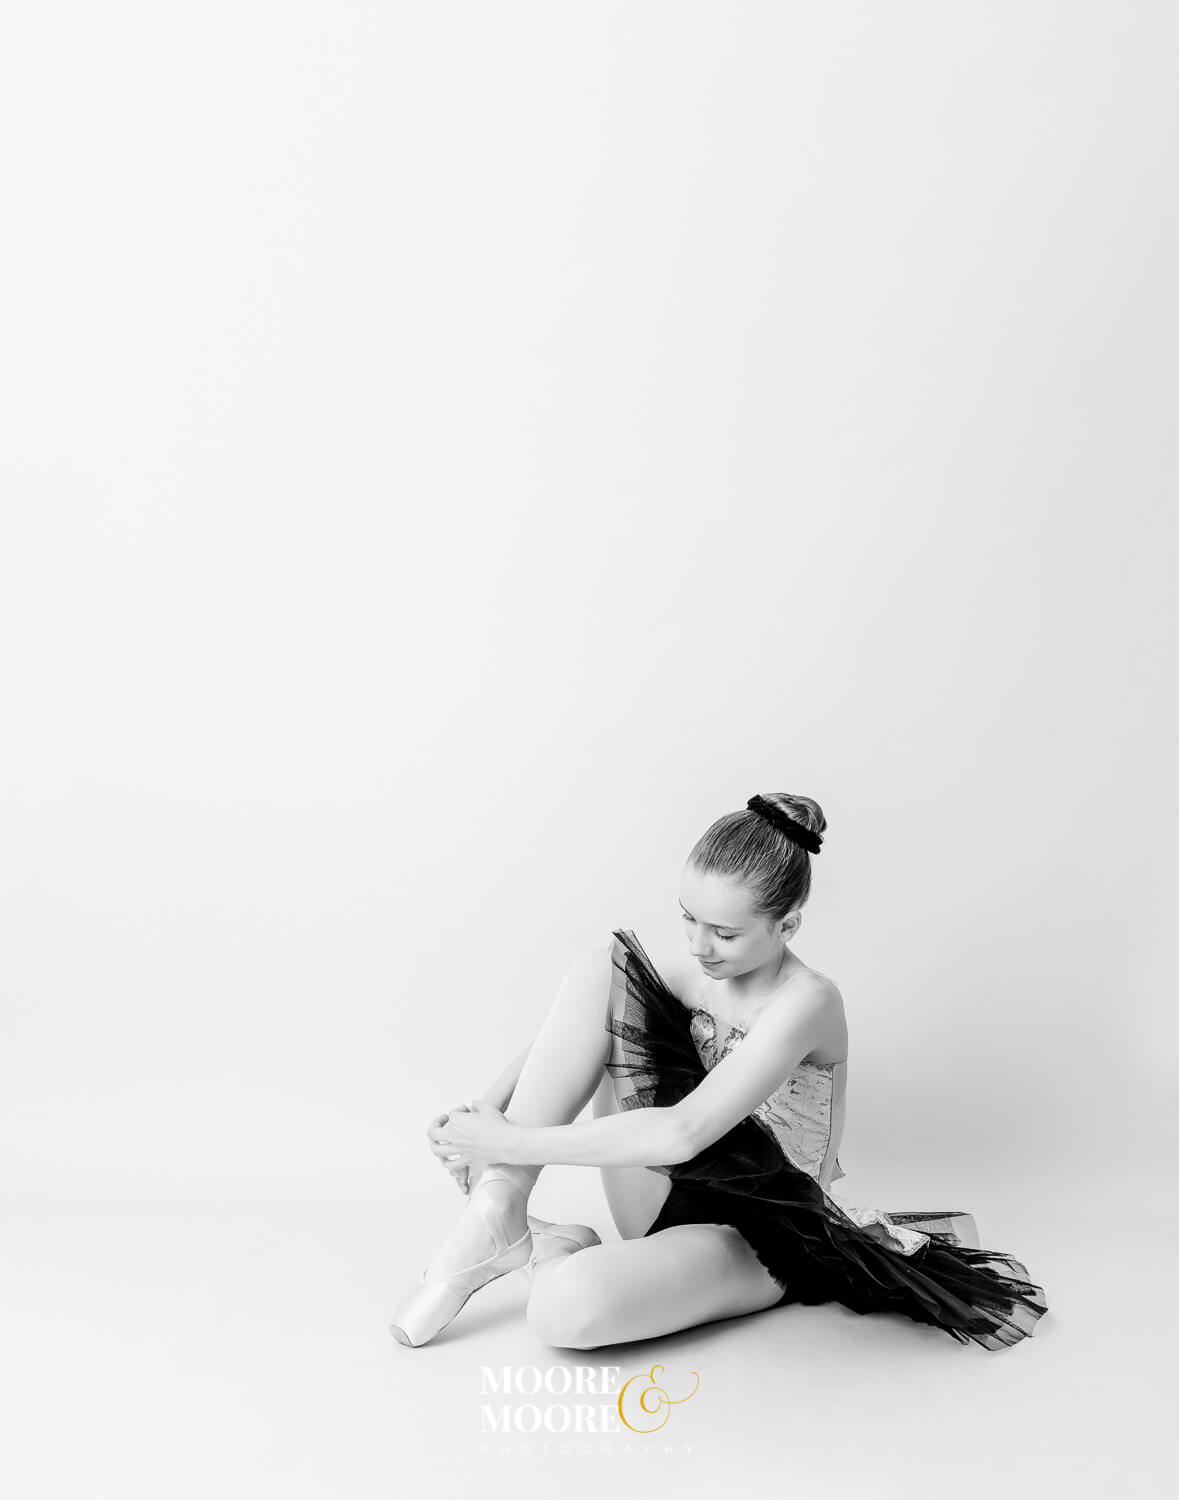 Pointe shoes Dance Photoshoot at Moore & Moore Photography